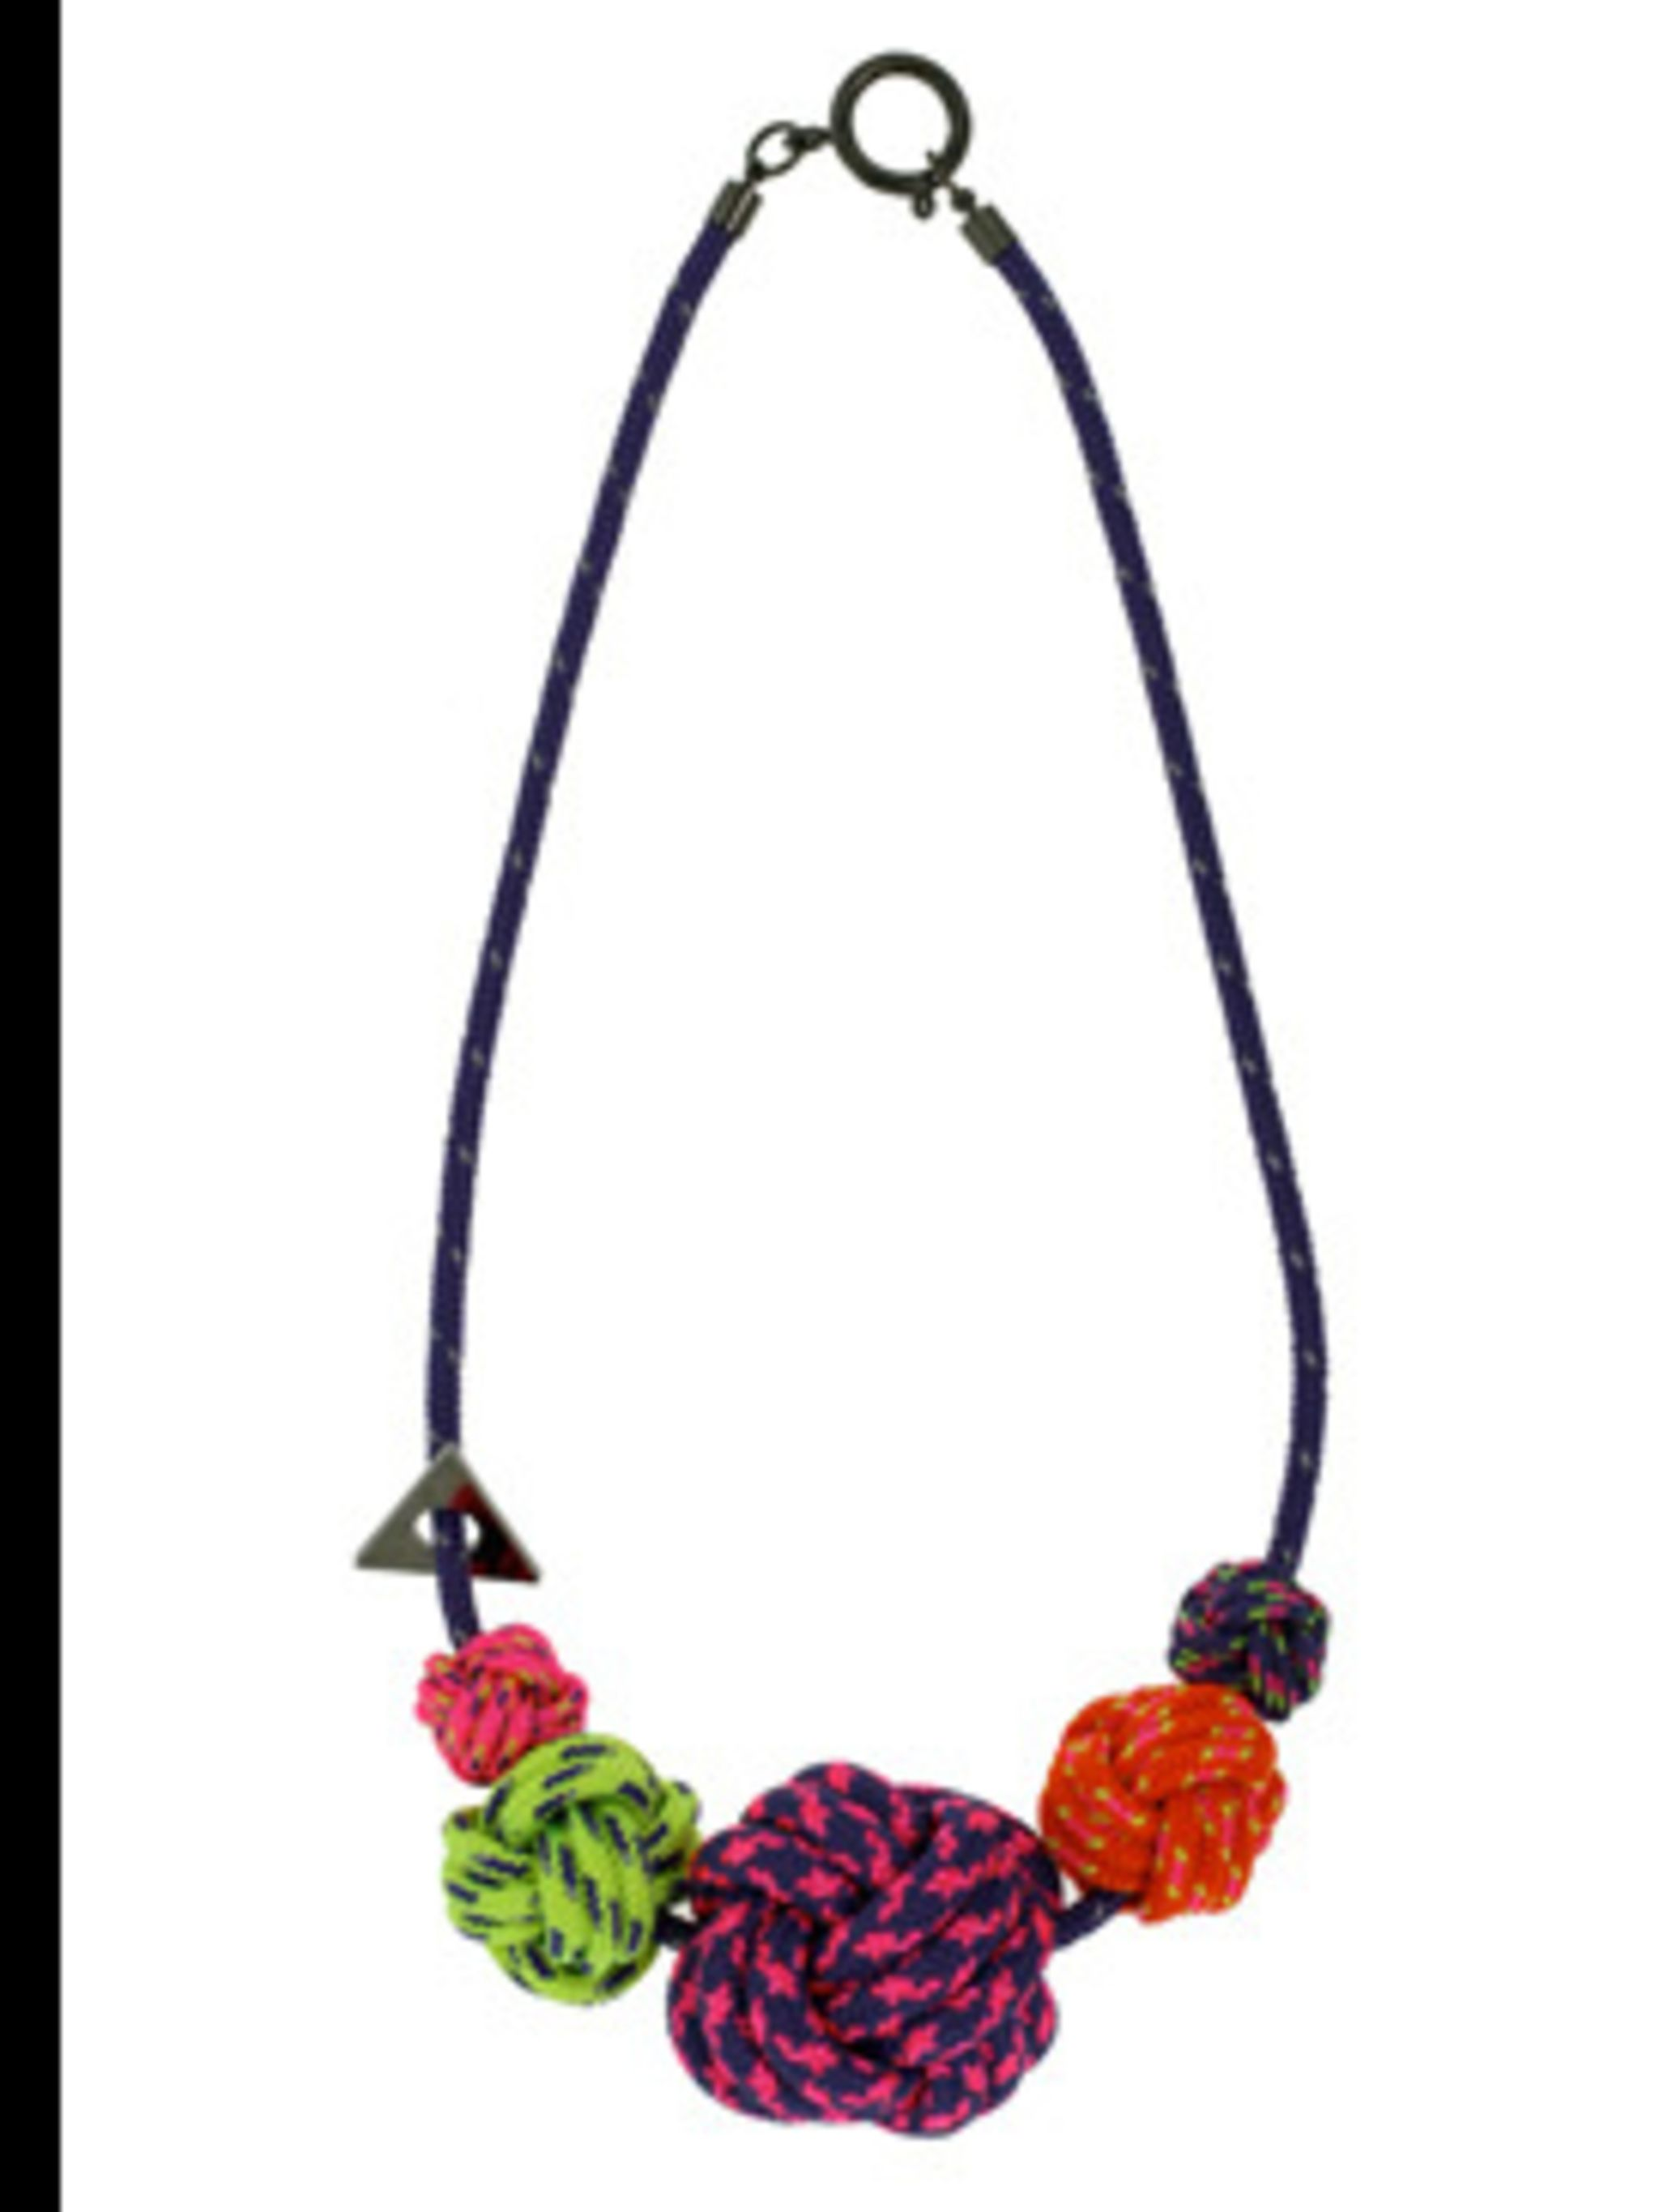 "<p>Necklace, £140 by Lanyard at <a href=""http://www.kabiri.co.uk/jewellery/necklaces/five_knot_necklacepurple"">Kabiri</a></p>"